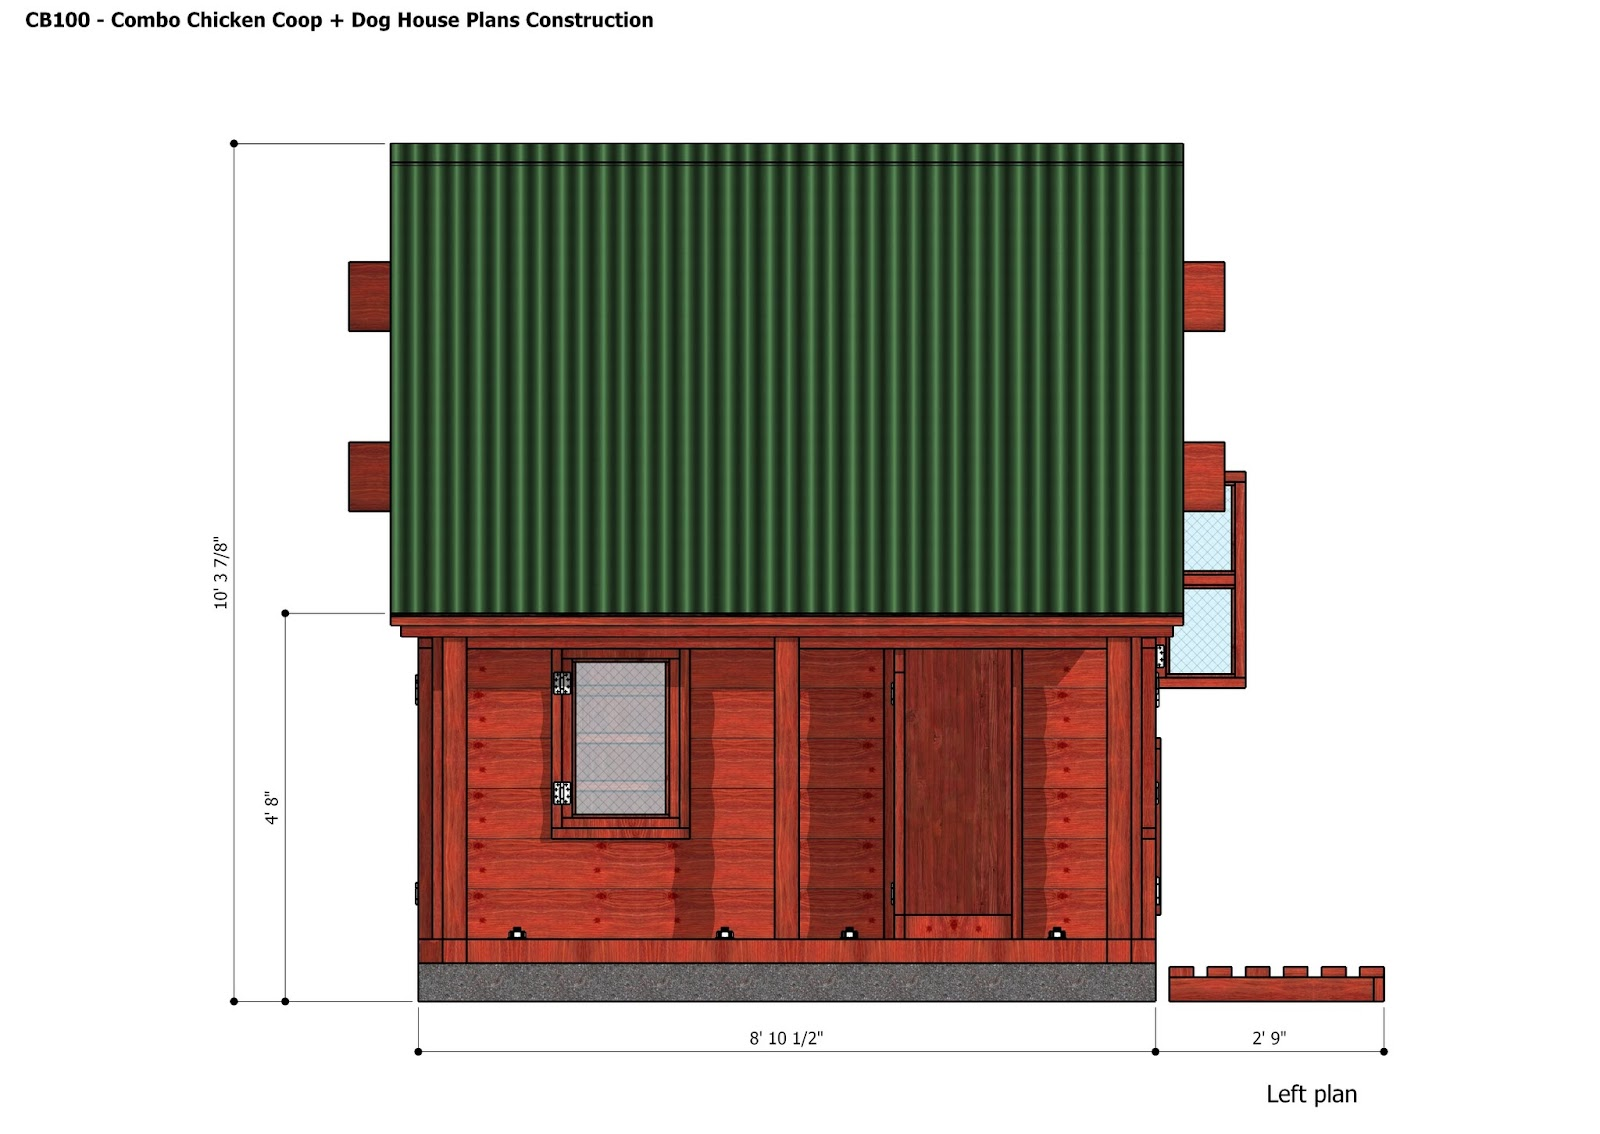 chicken house plans for 100 chickens pdf